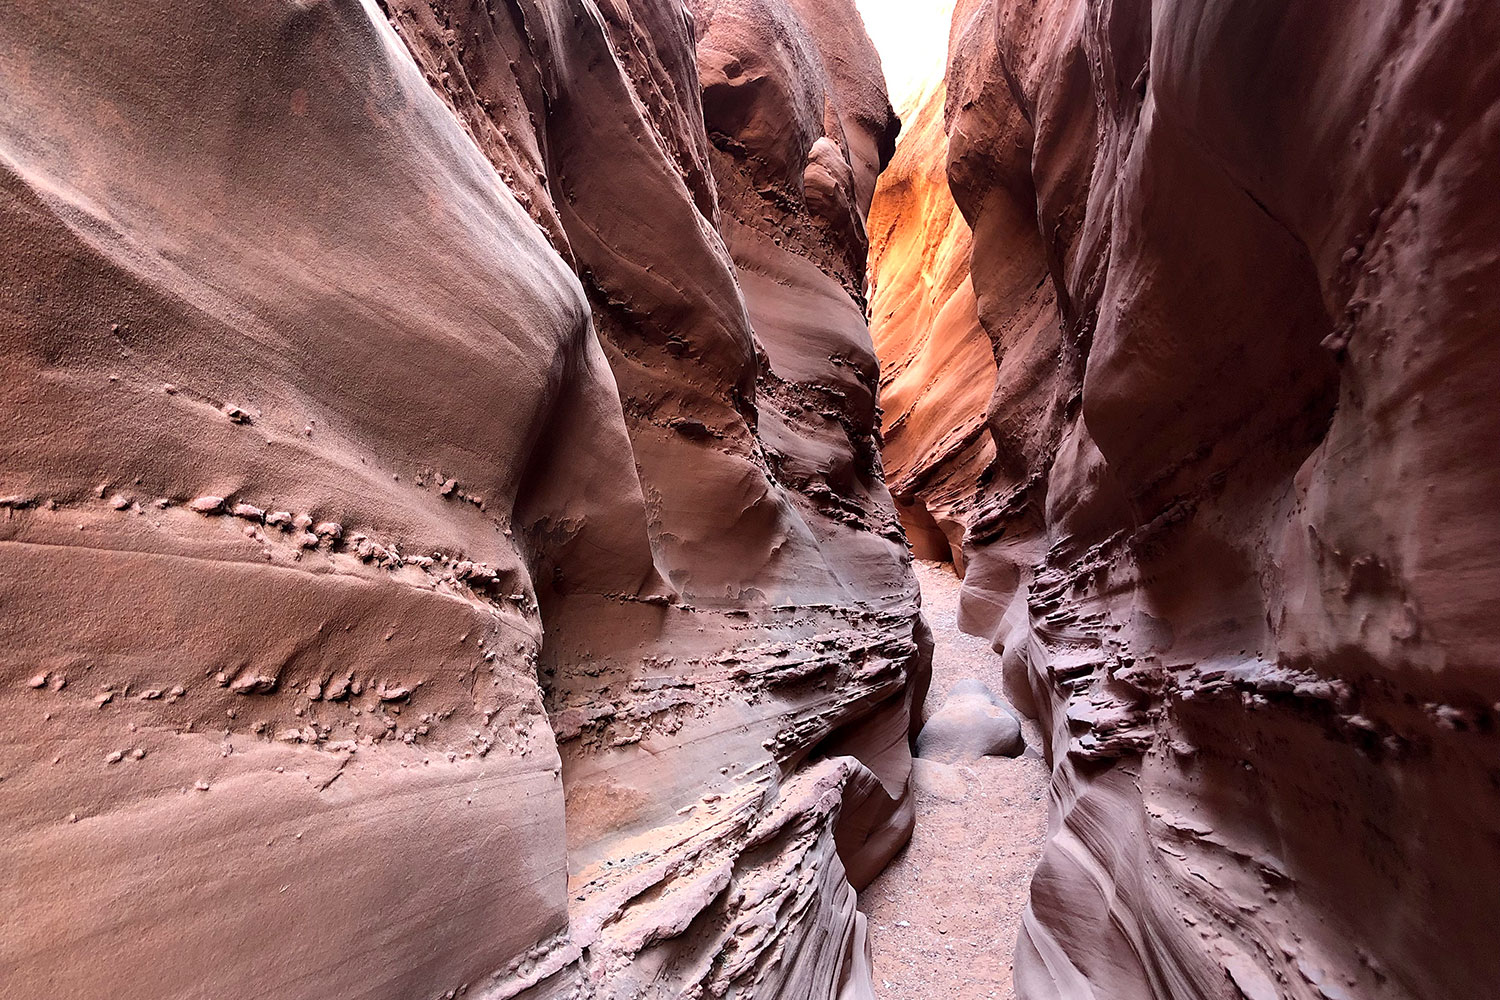 Grand Staircase slot canyon Peek-A-Boo & Spooky